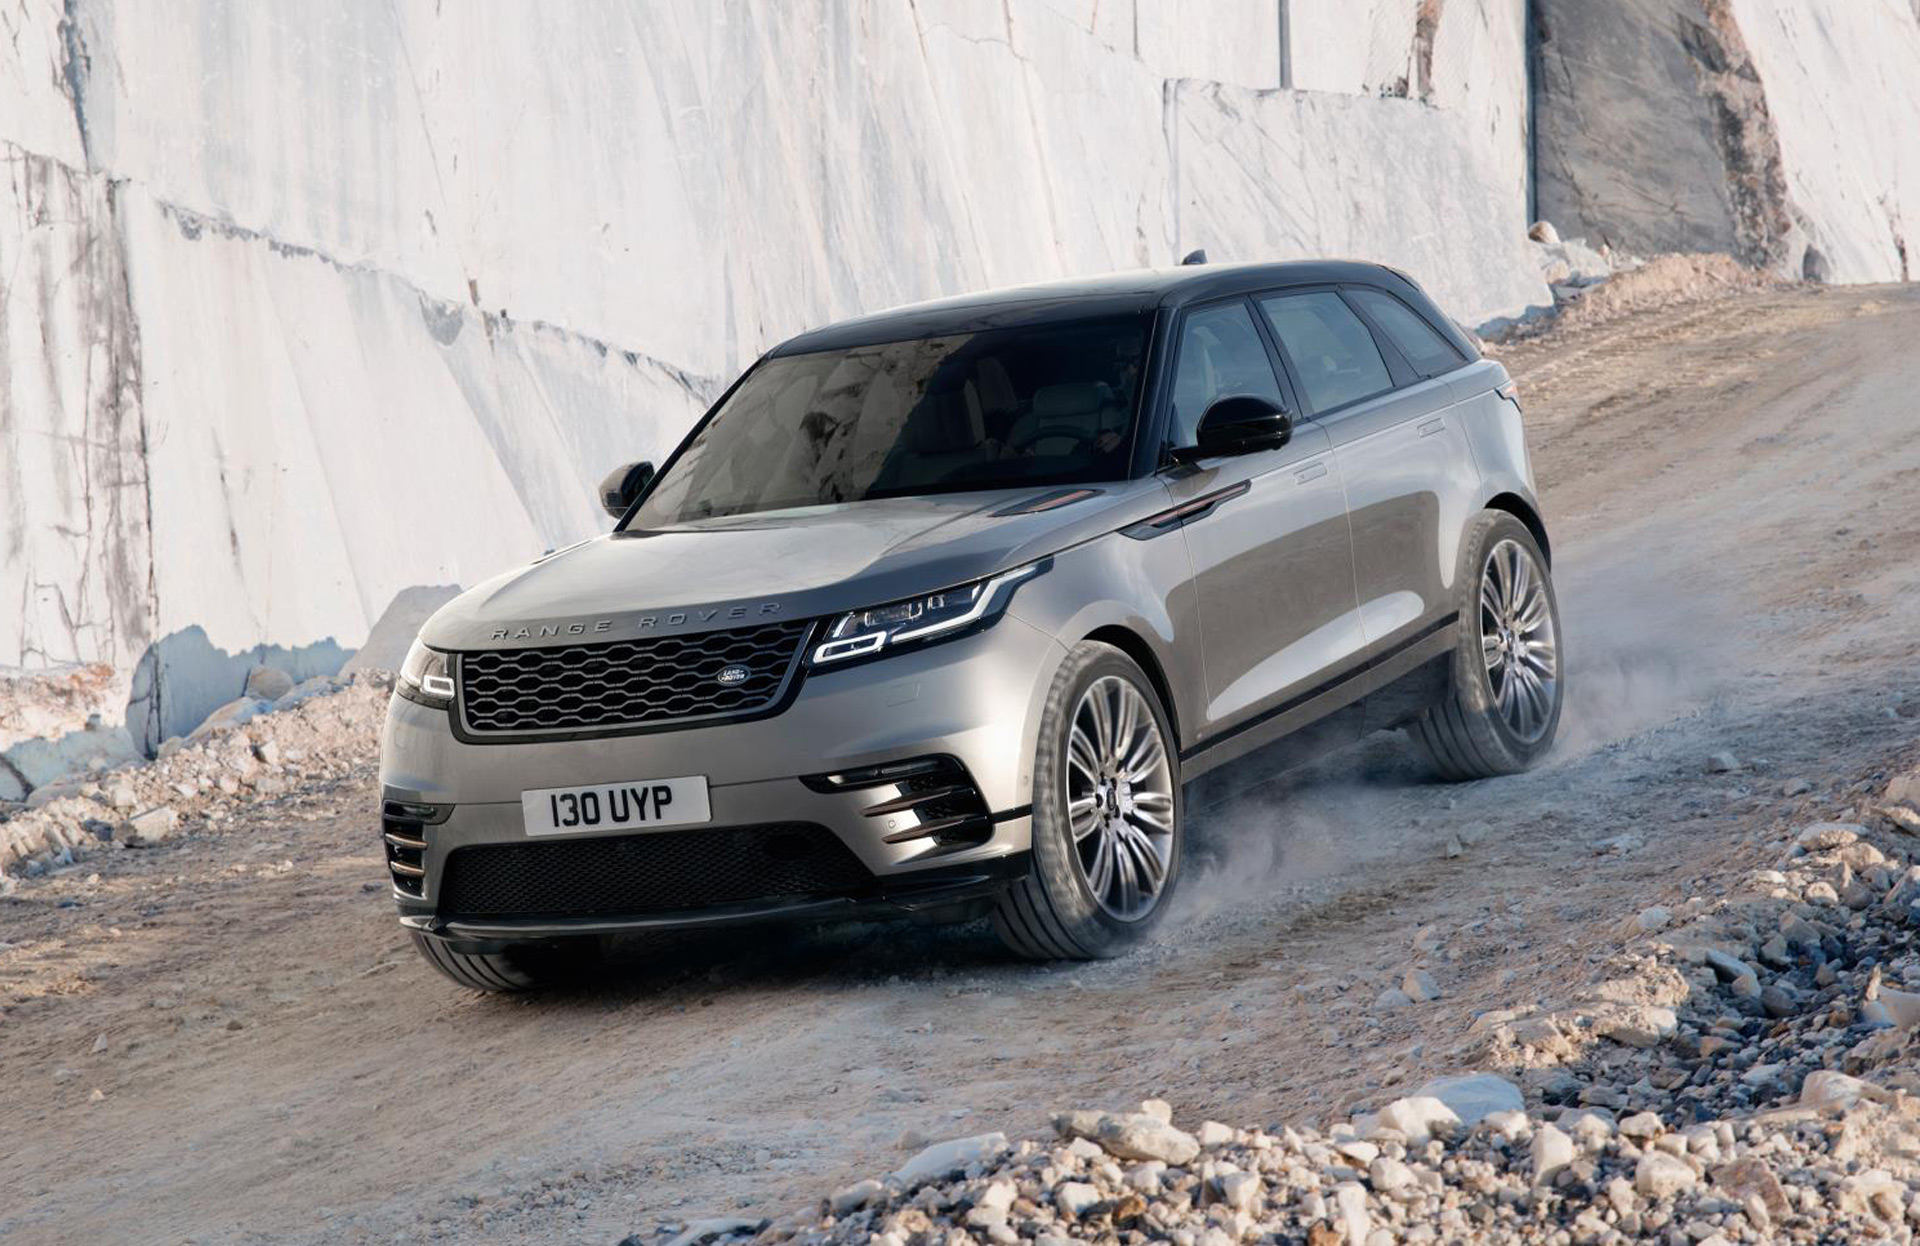 2018 land rover range rover velar preview for Interieur range rover velar